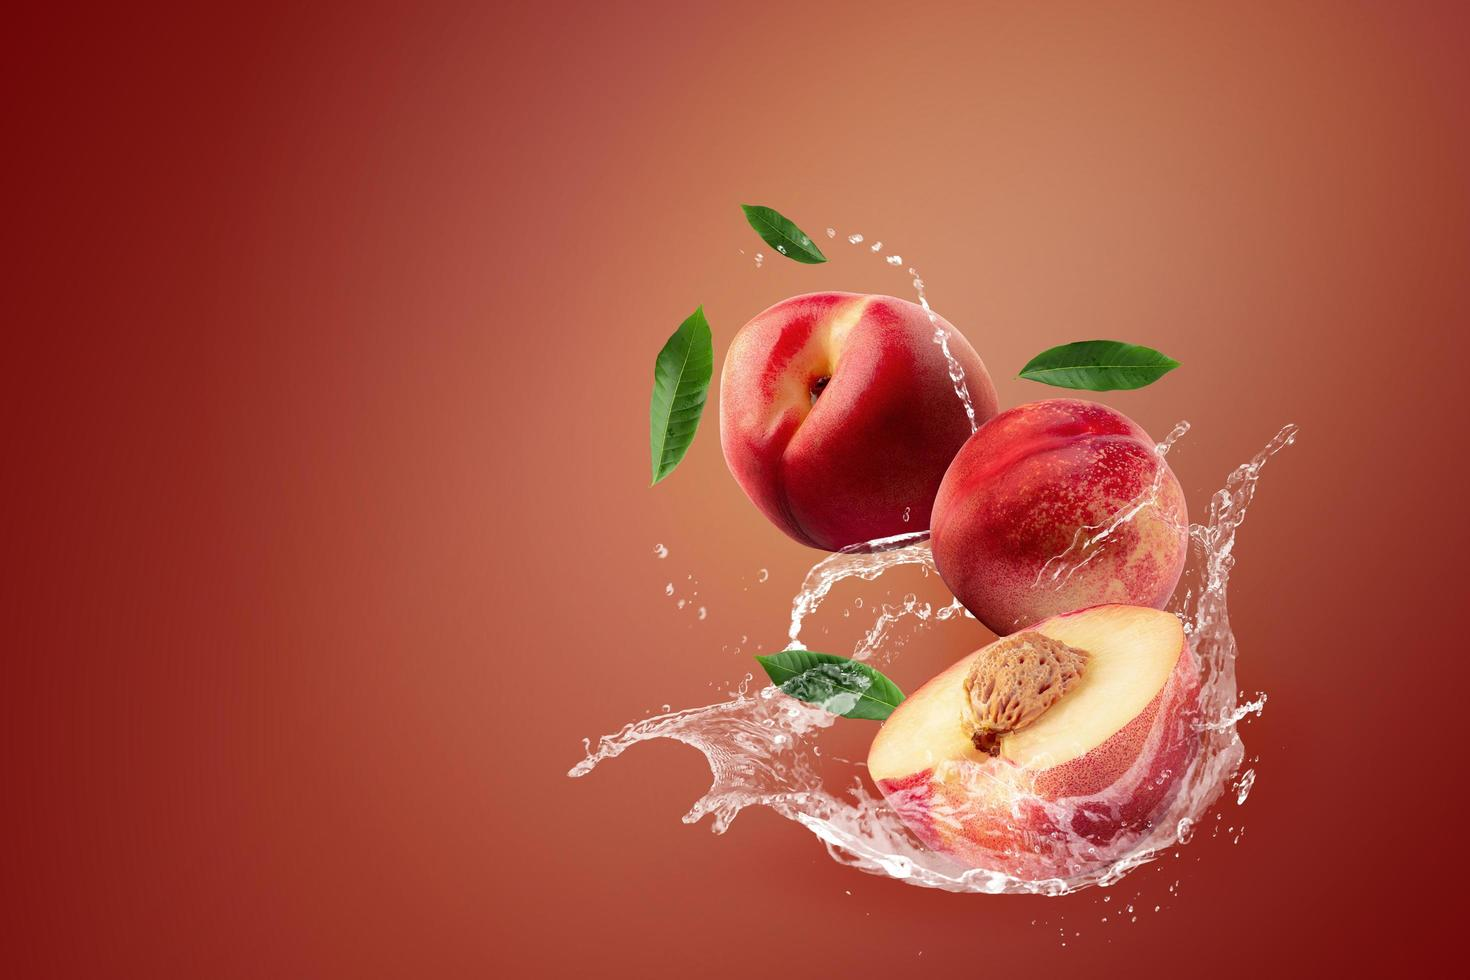 Water splashing on fresh nectarines photo